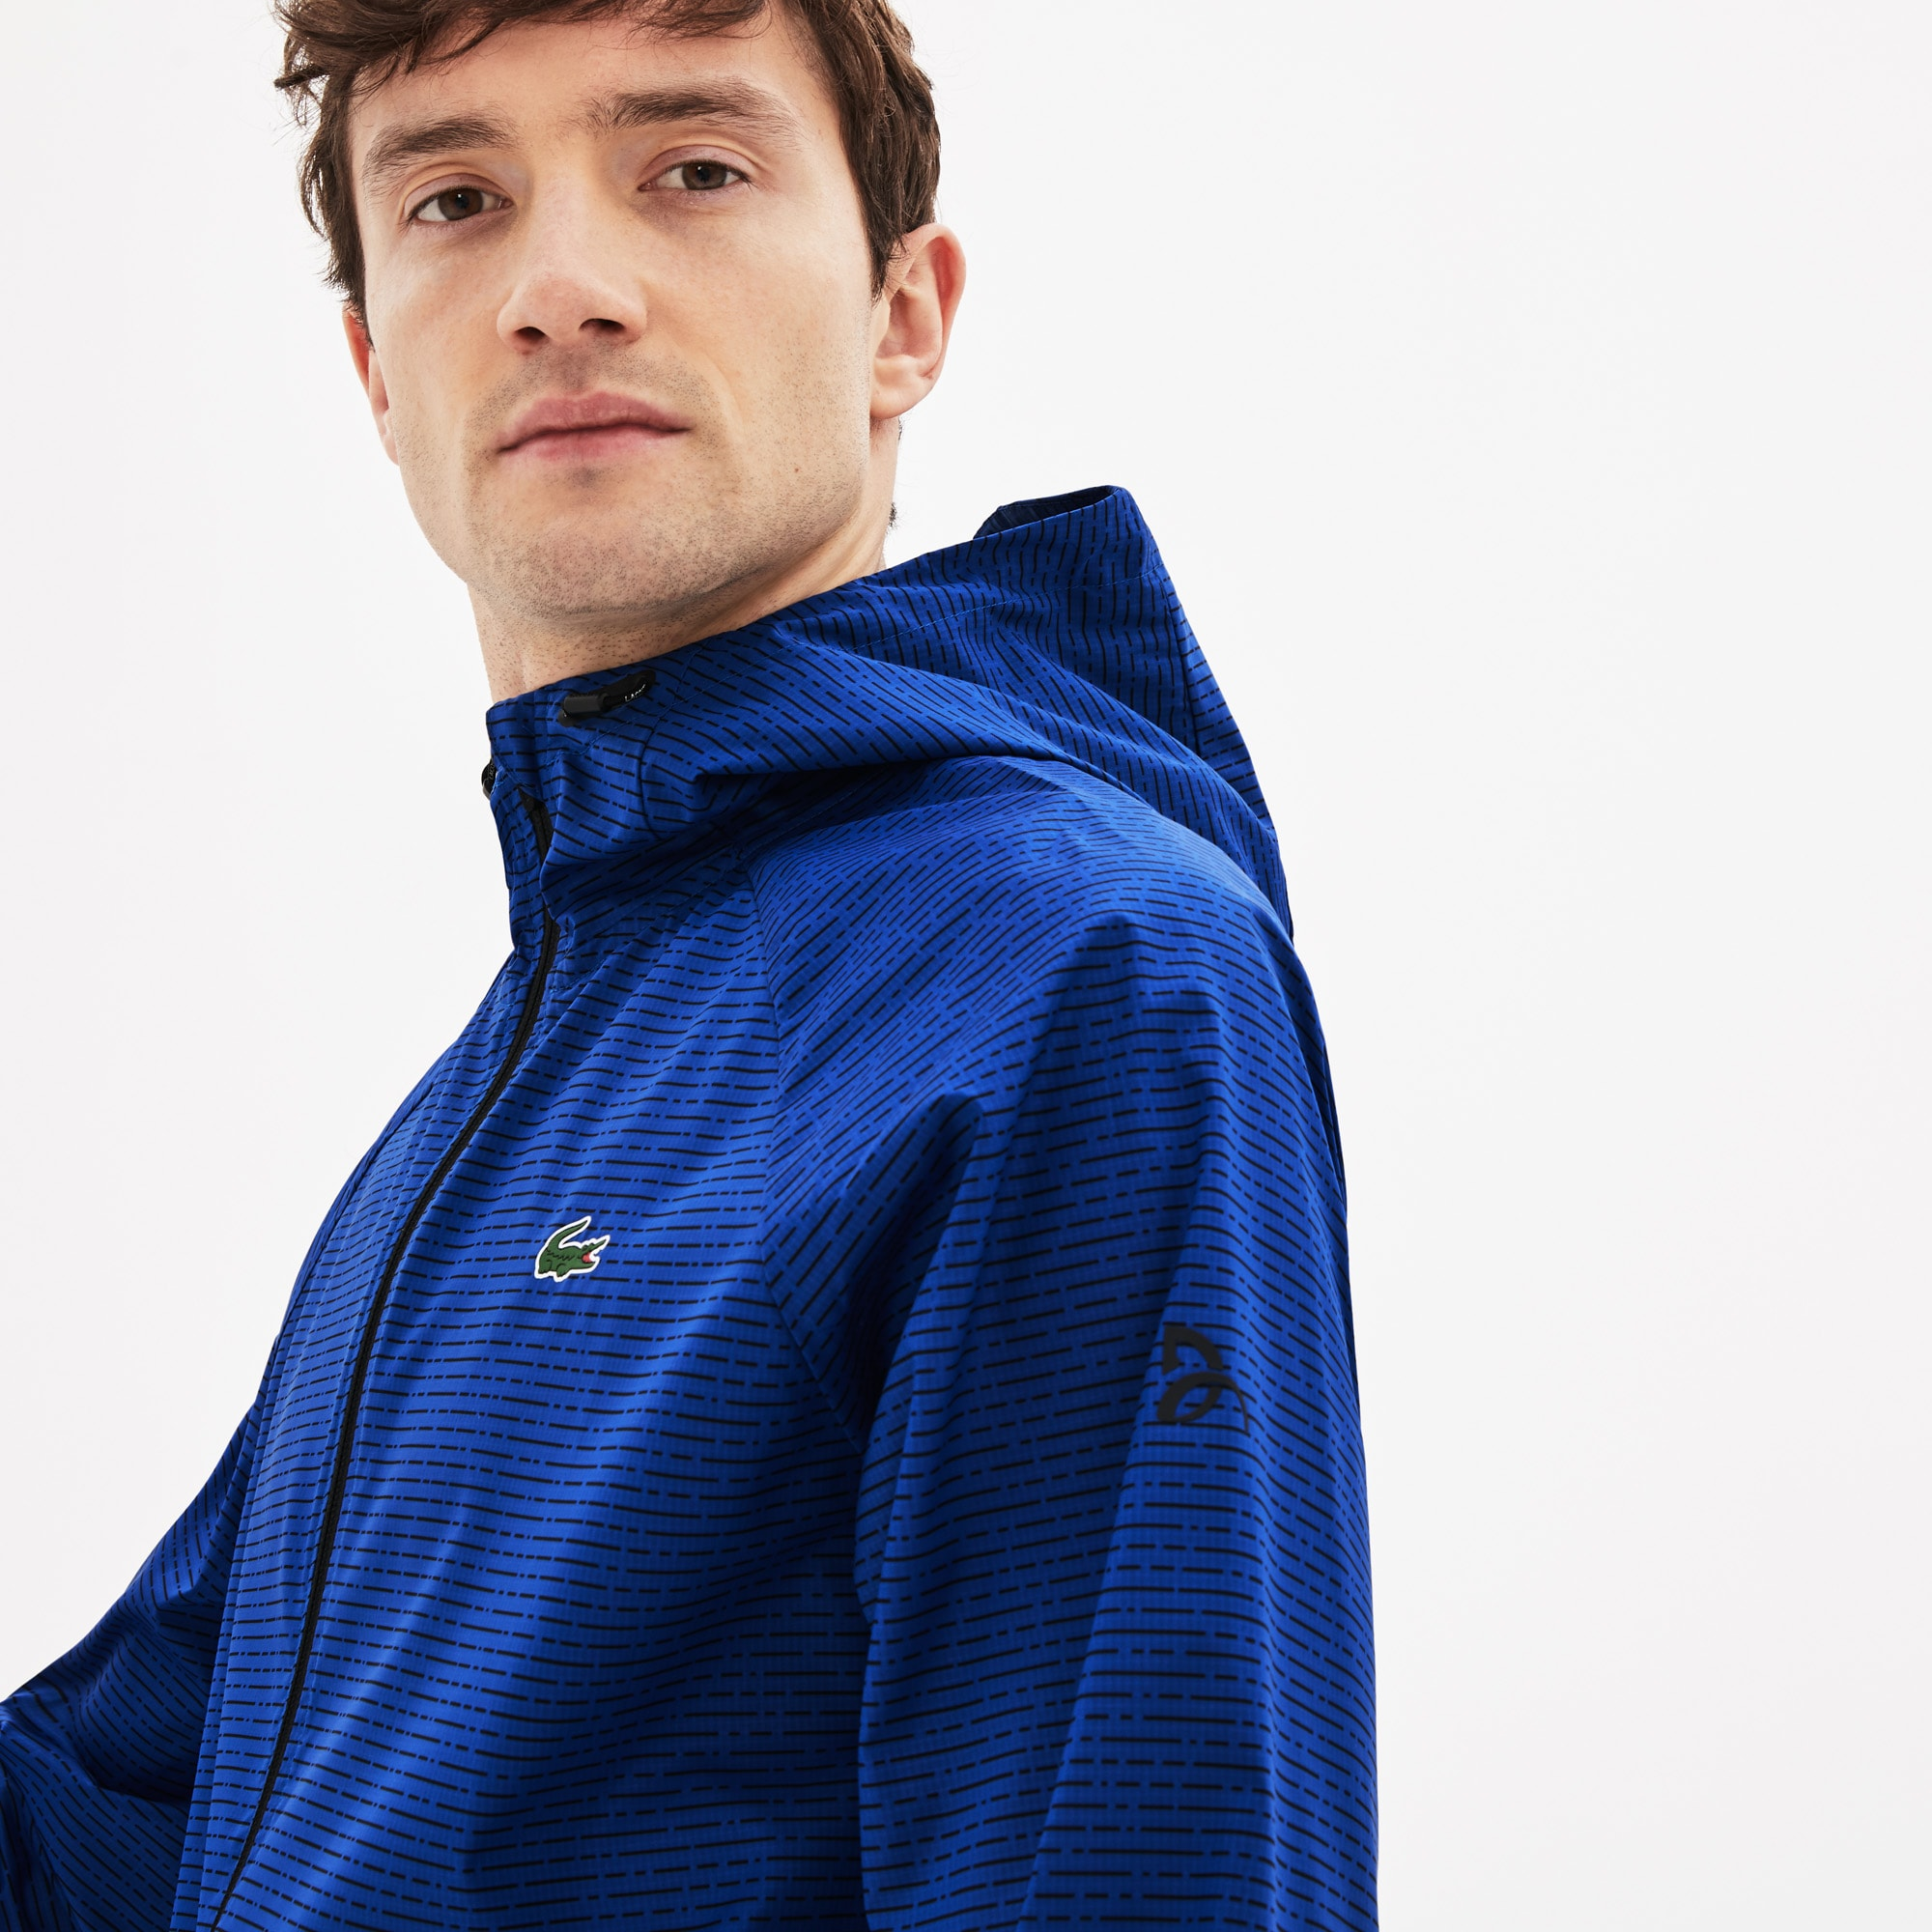 709982a0f0 Men's Jackets and Coats | Lacoste Outerwear | LACOSTE